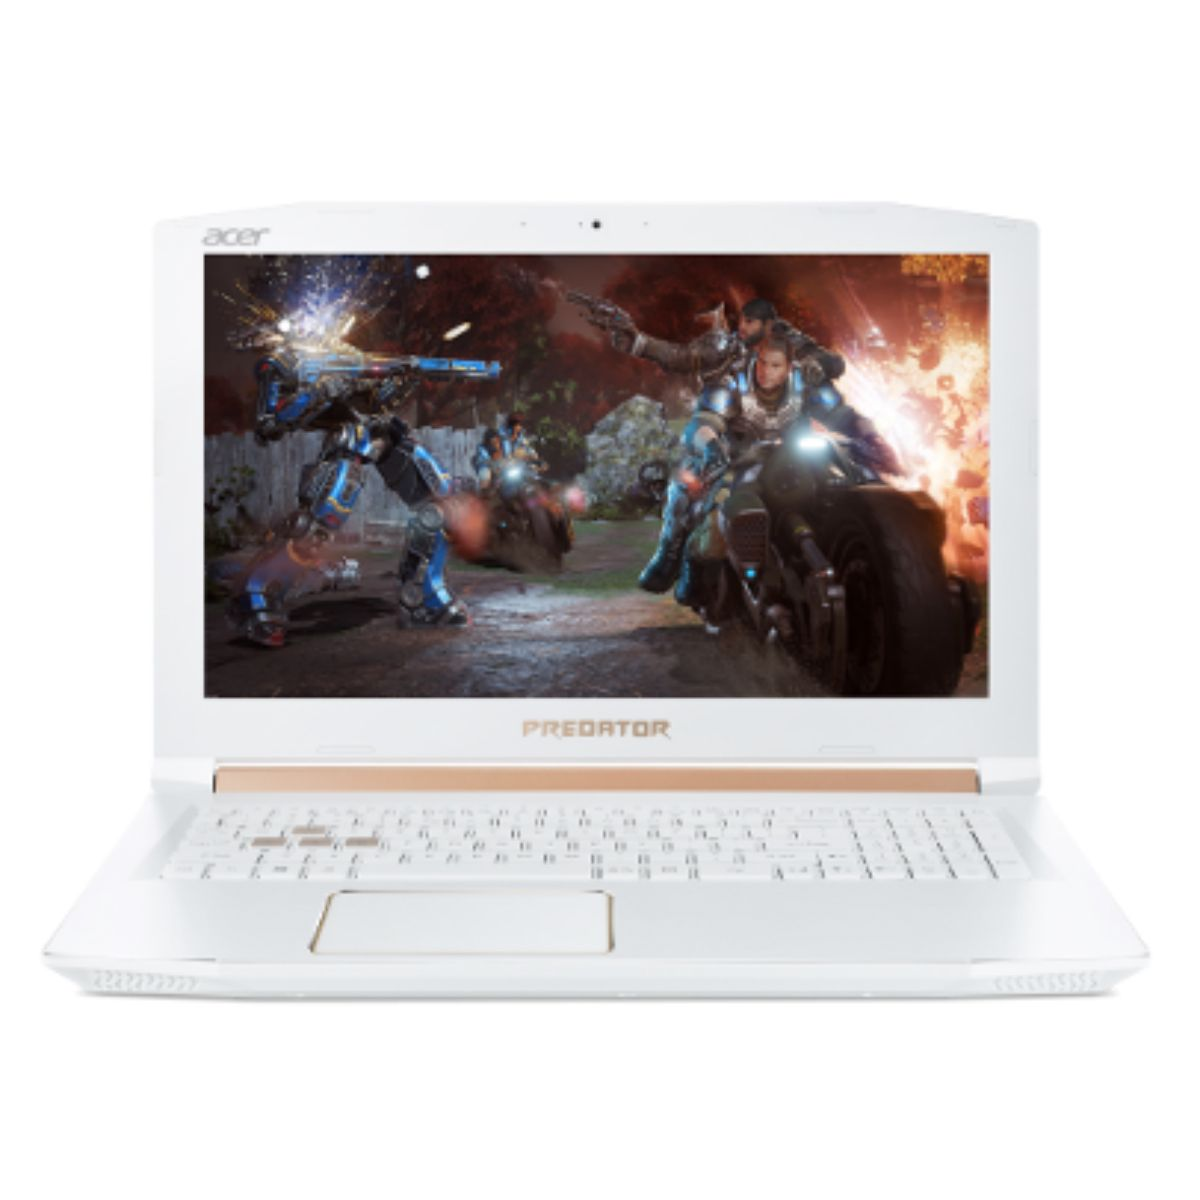 Notebook Acer Helio Ph315-51-7428es Core I7 W10